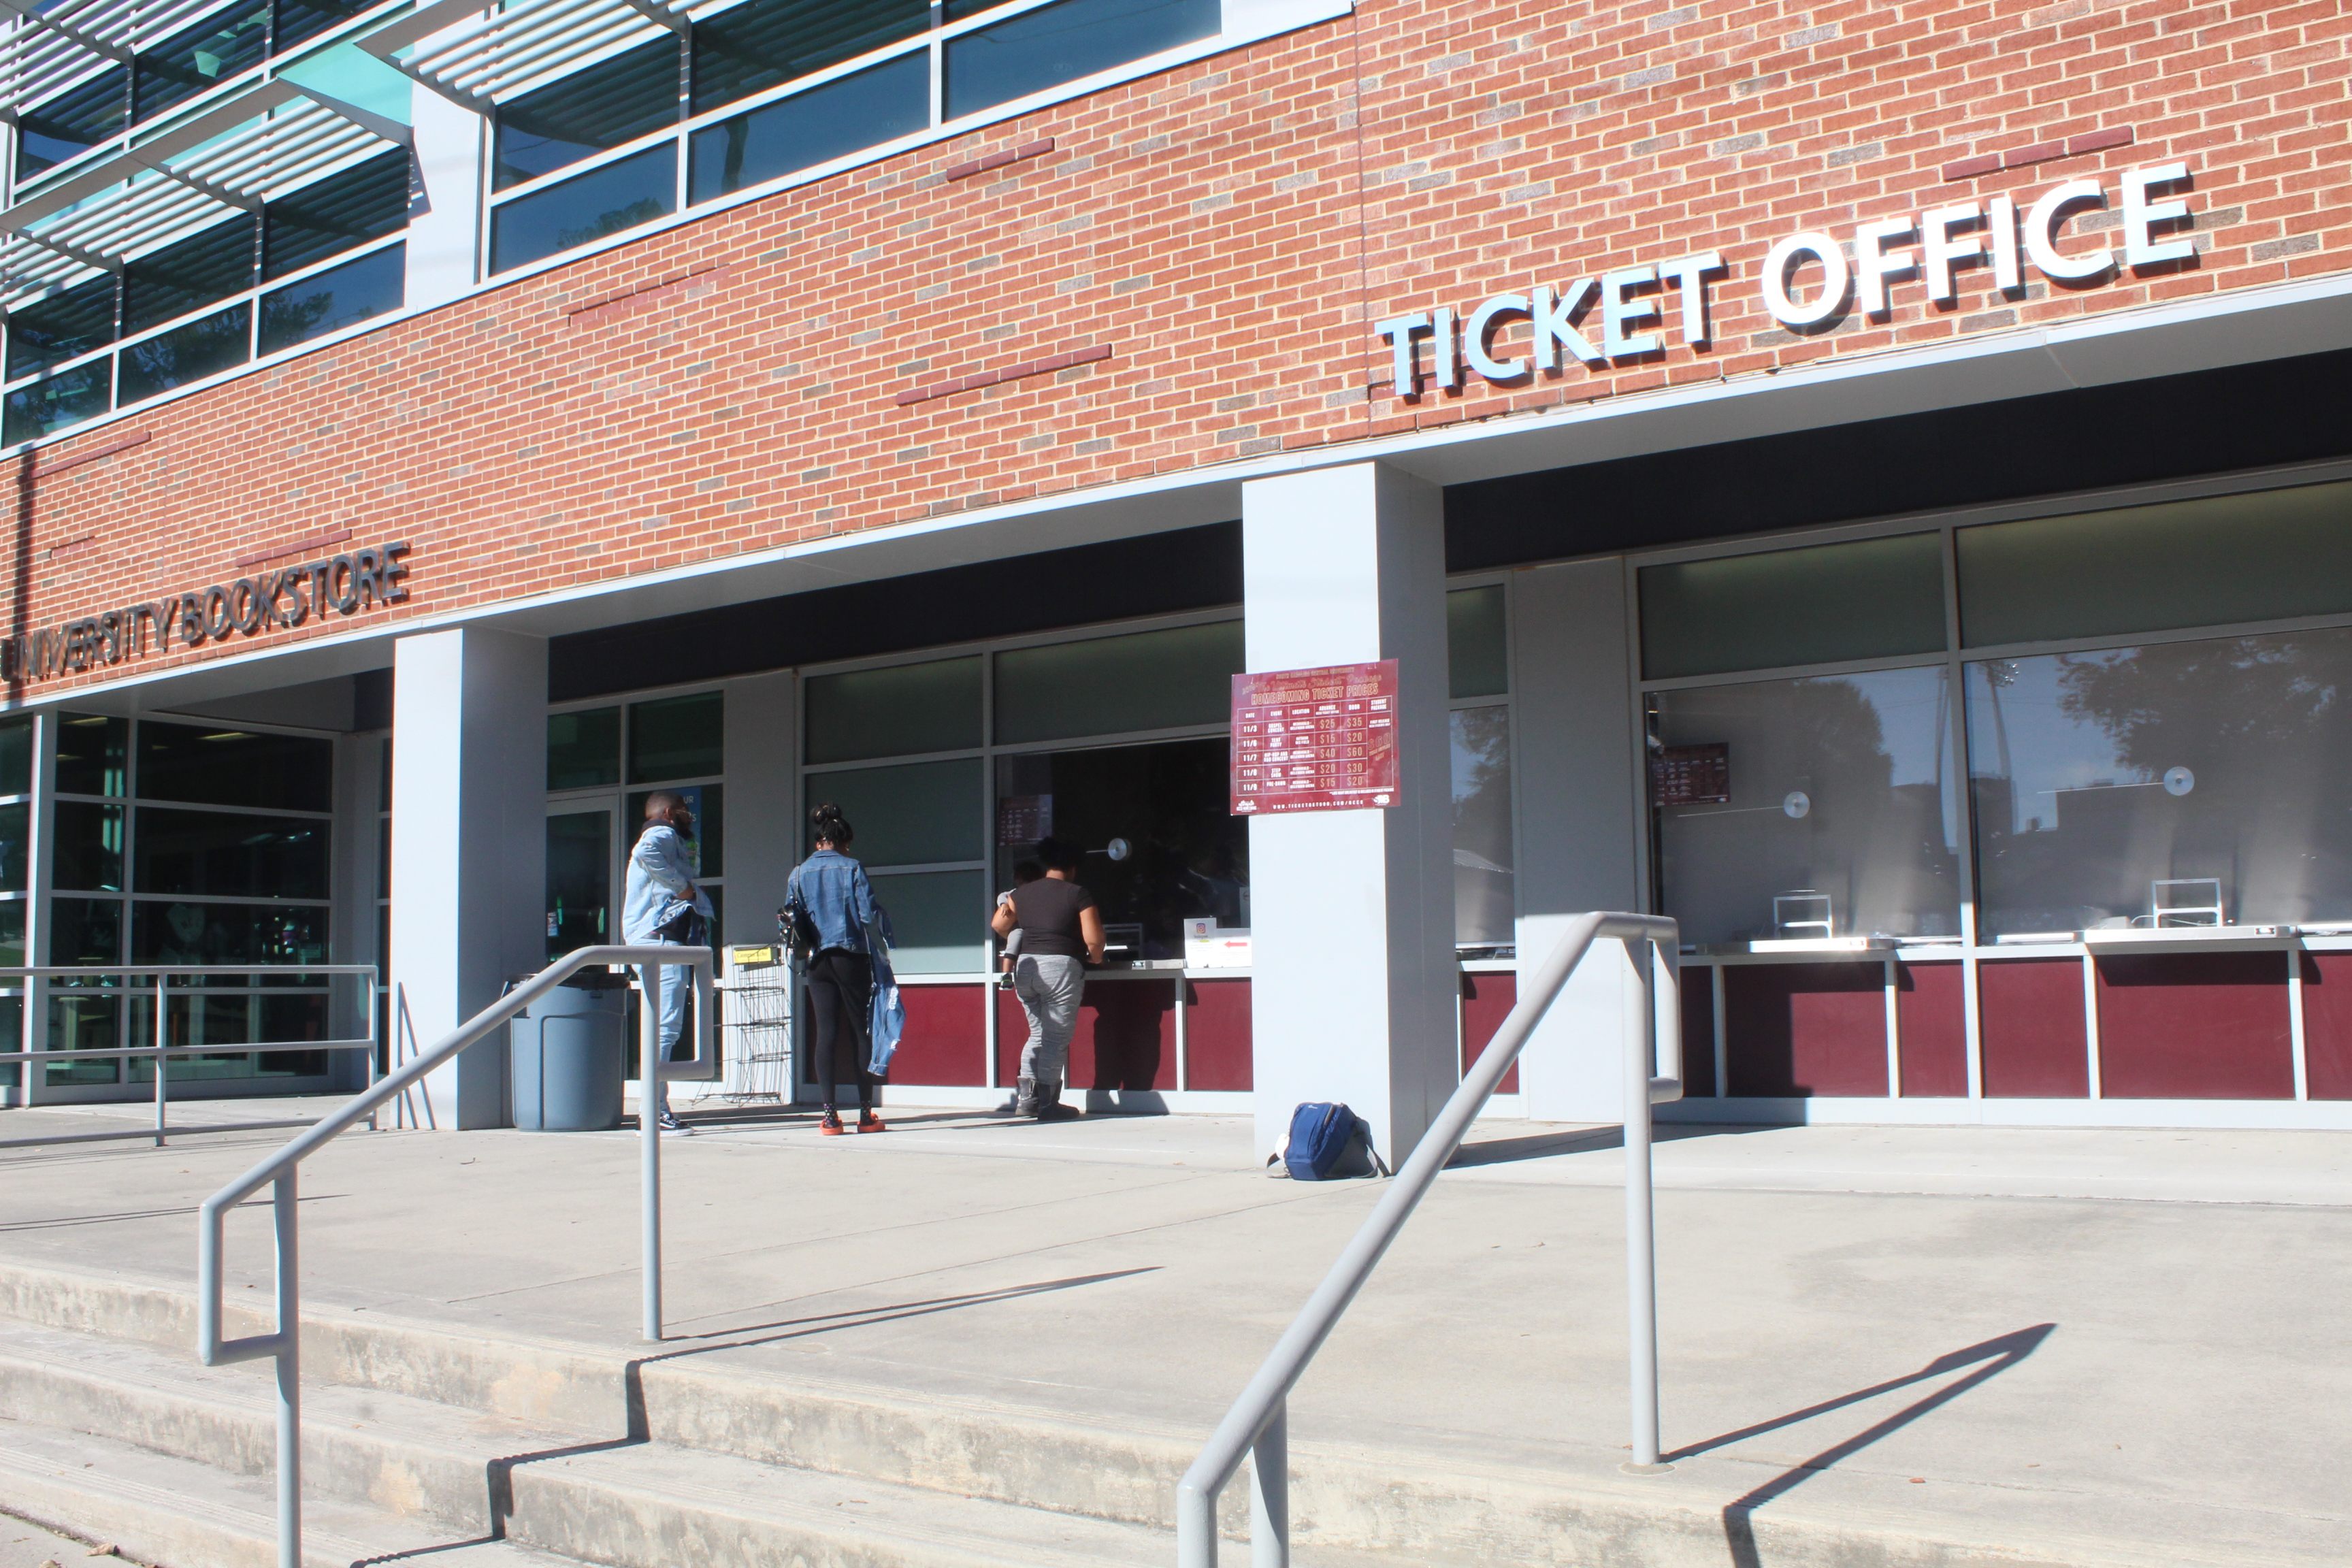 ticket-office-pic.jpg?time=1618511793